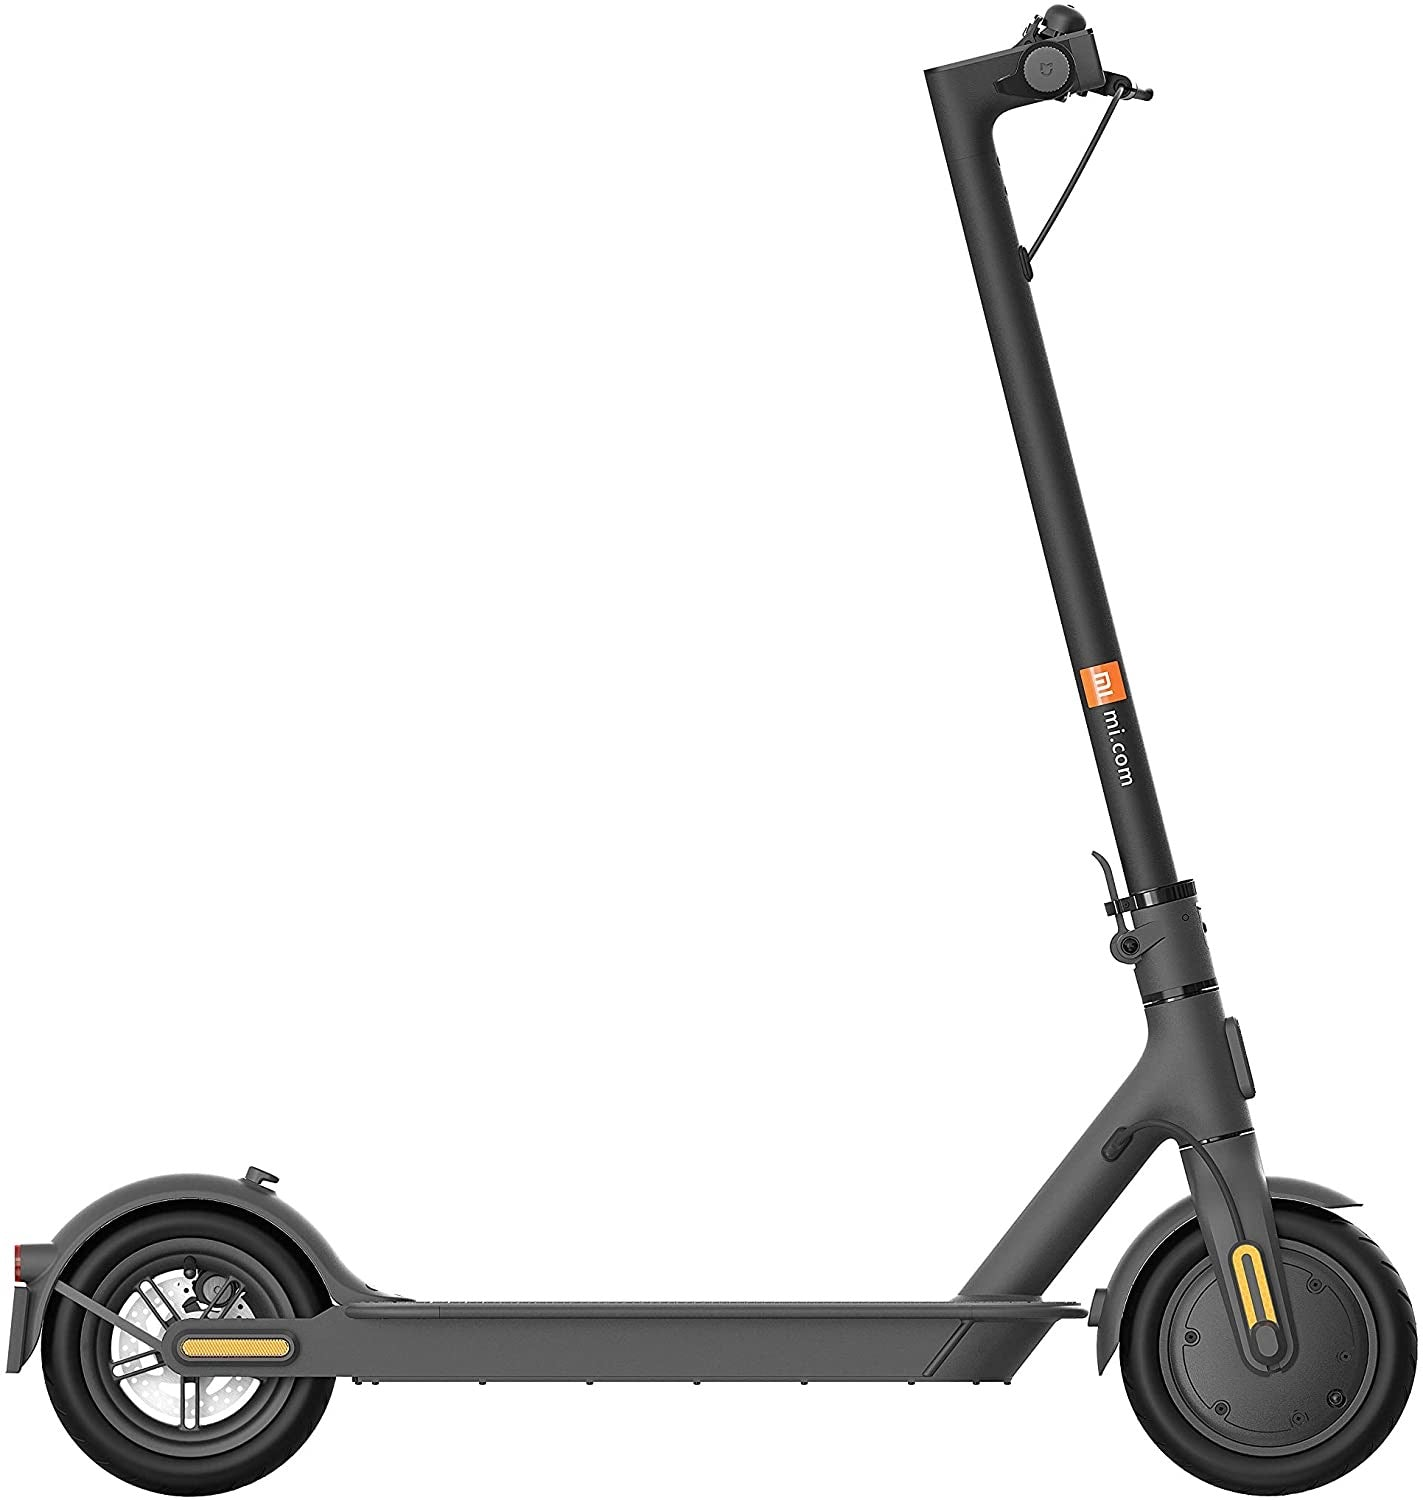 Xiaomi S1 Electric Scooter Profile Image